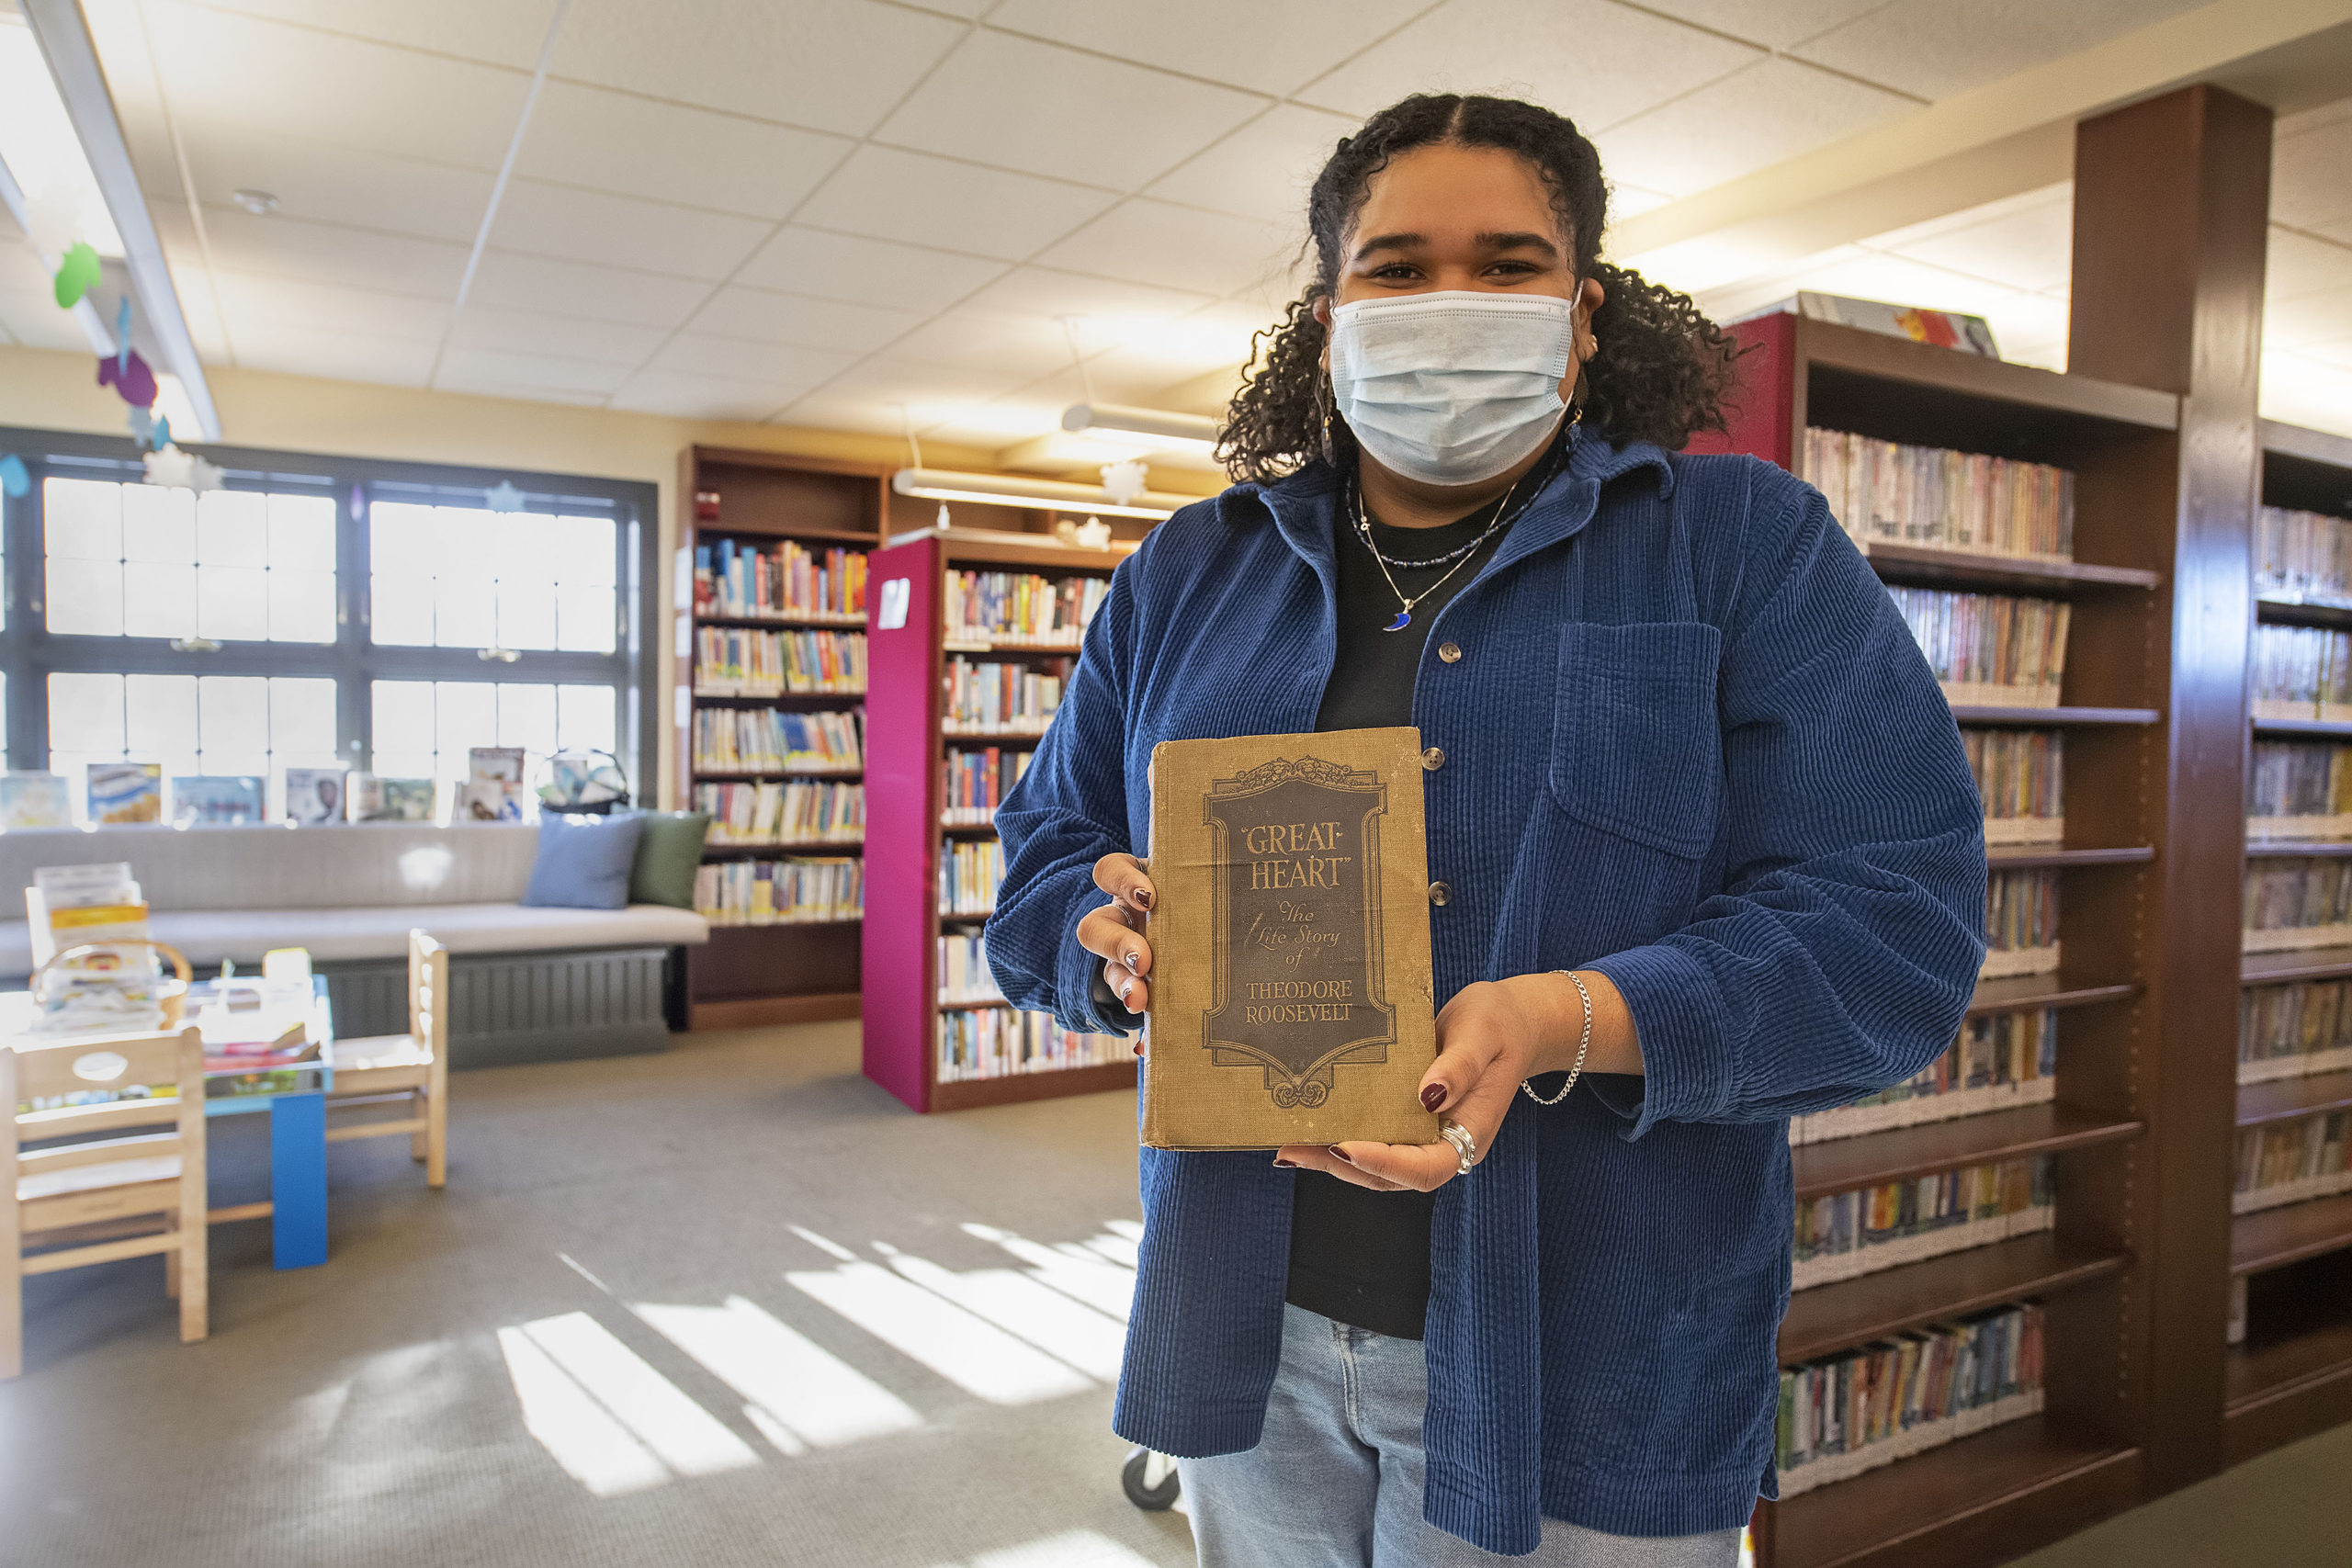 Librarian Julianna Vargas accepted the overdue book from John Moss, who found it in a crate of old books he had ins storage. MICHAEL HELLER PHOTOS